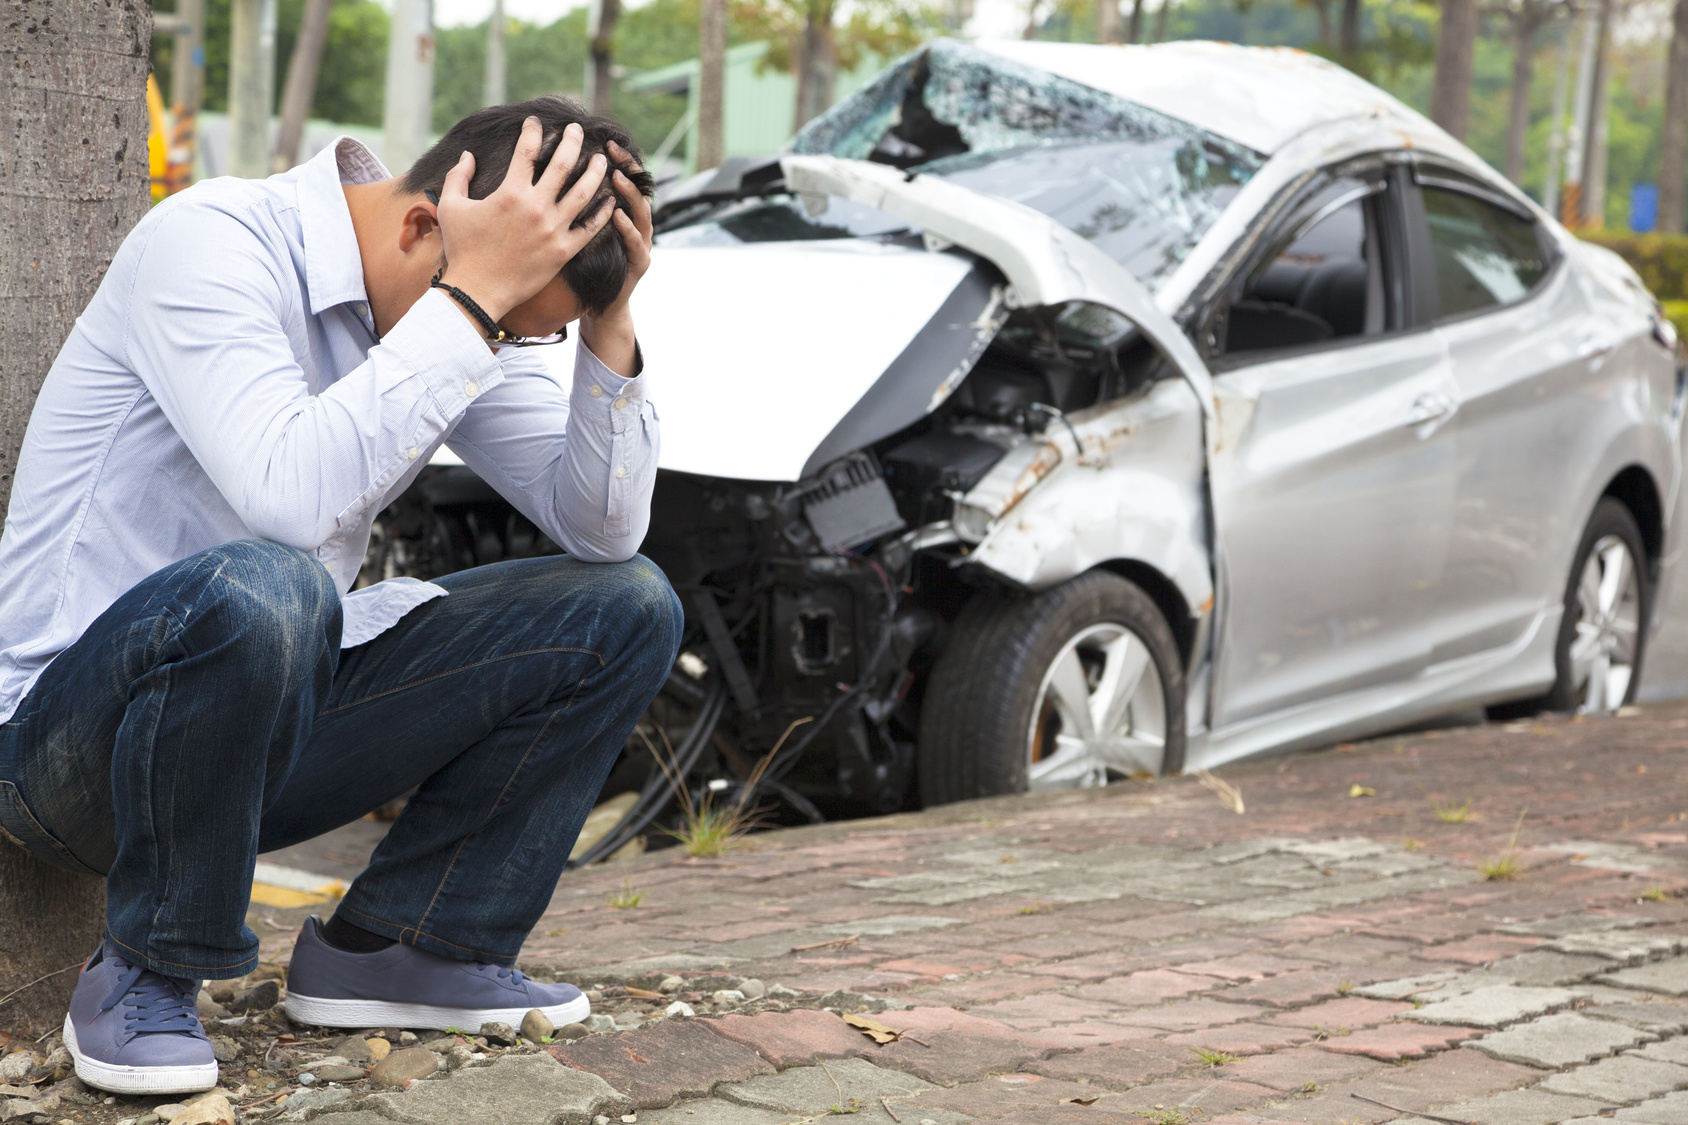 Car accidents can cause lifelong herniations, disc protrusions, annular tears and pain and suffering.